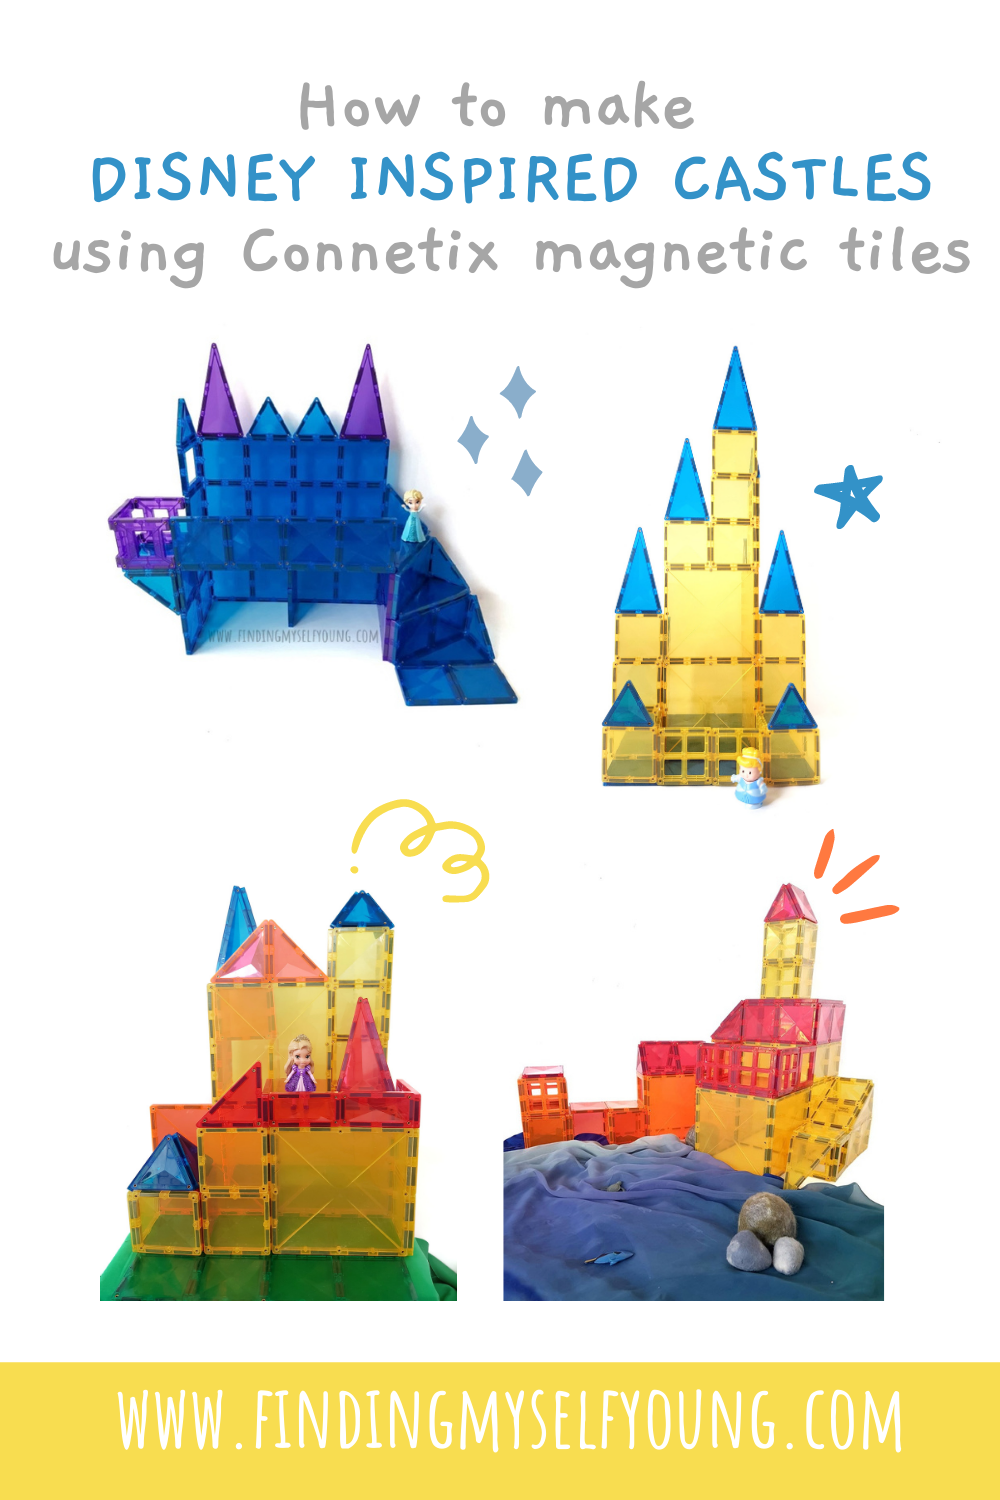 how to build disney inspired castles with connetix magnetic tiles